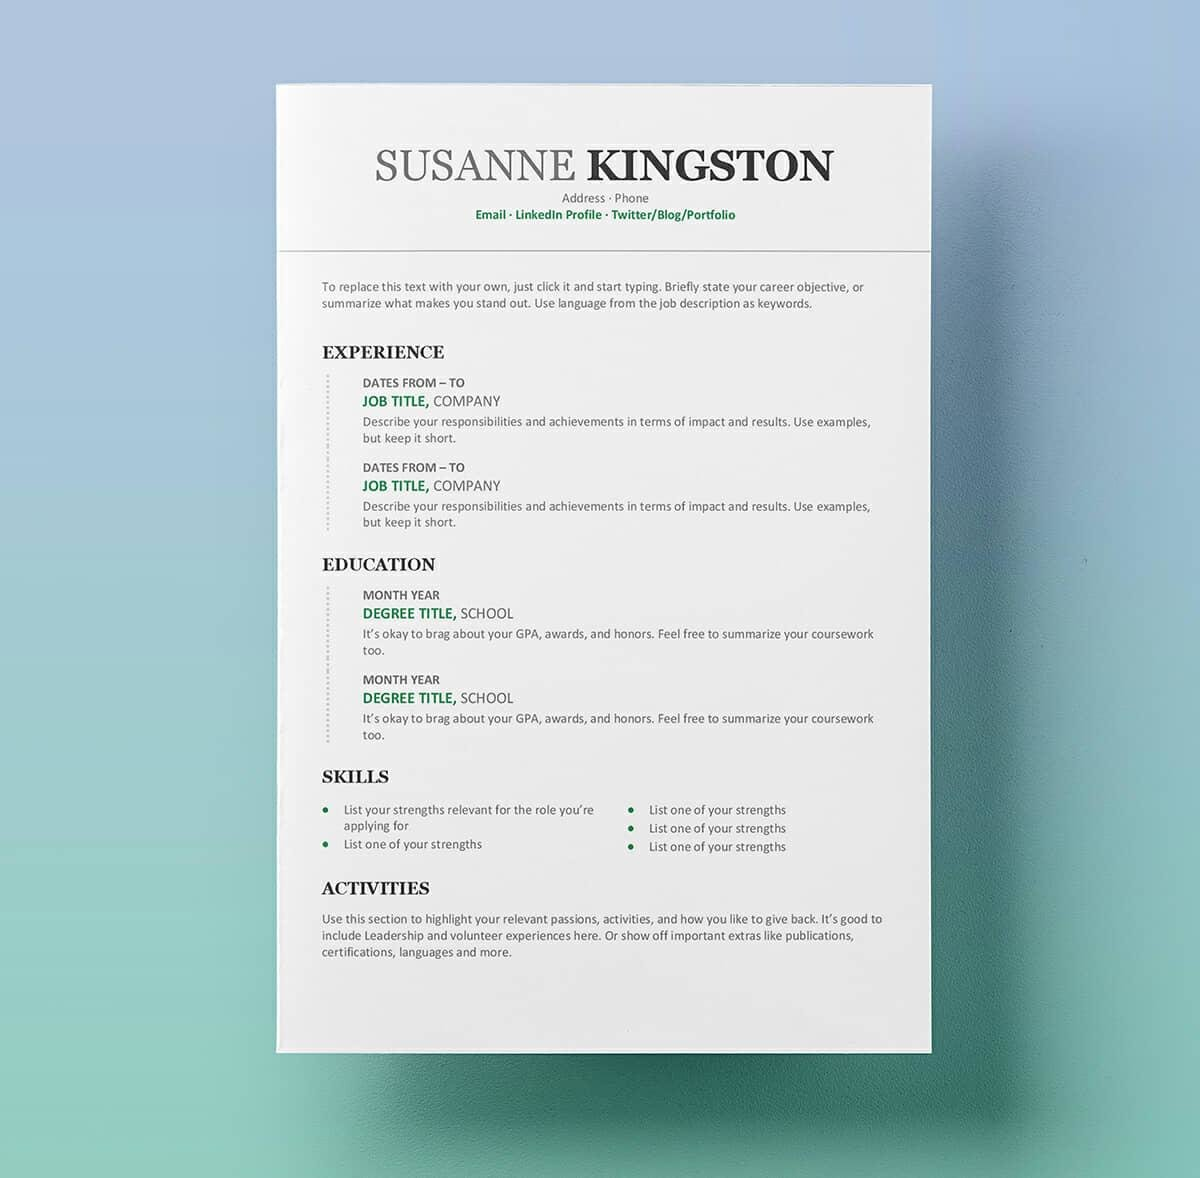 resume Resume Templates In Word resume templates for word free 15 examples download microsoft with green details